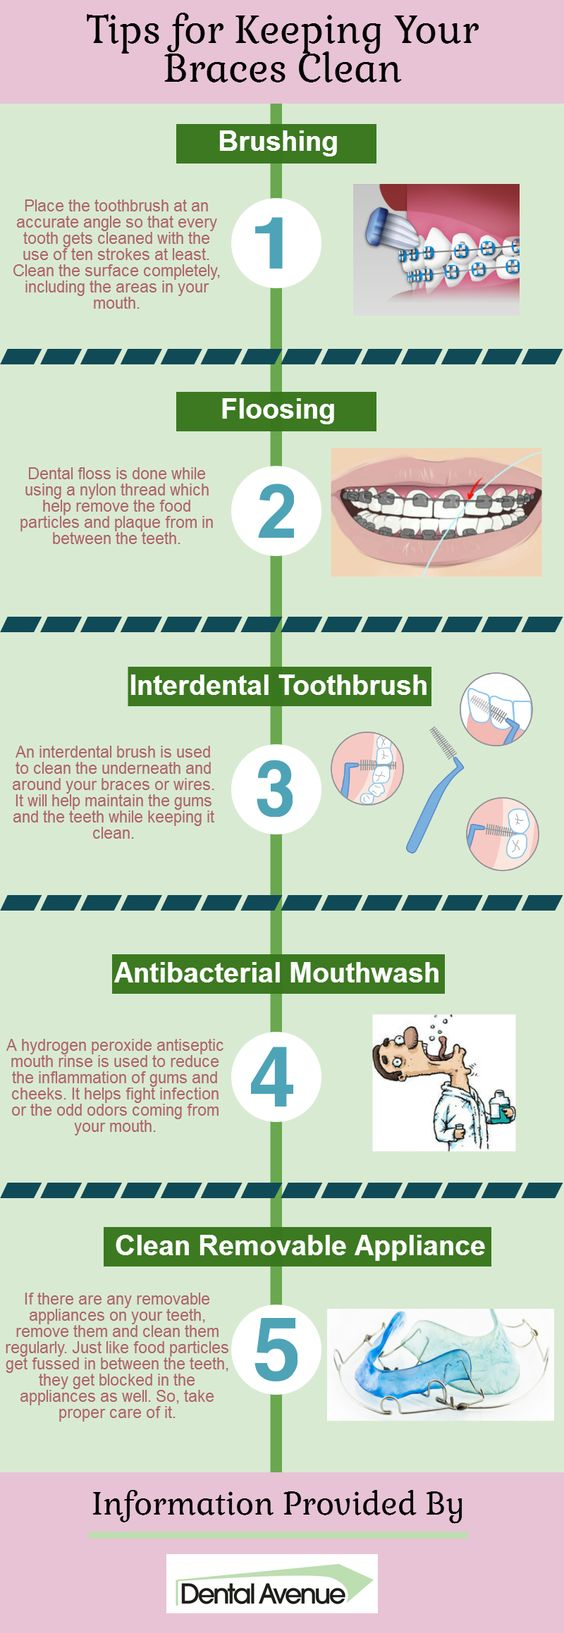 The way, keeping your teeth clean and healthy is important, it is also important that you take proper care of the braces applied to your teeth. There are several things that can be done at regular intervals. Go through this infographic to know what all it includes, keeping the braces clean.: